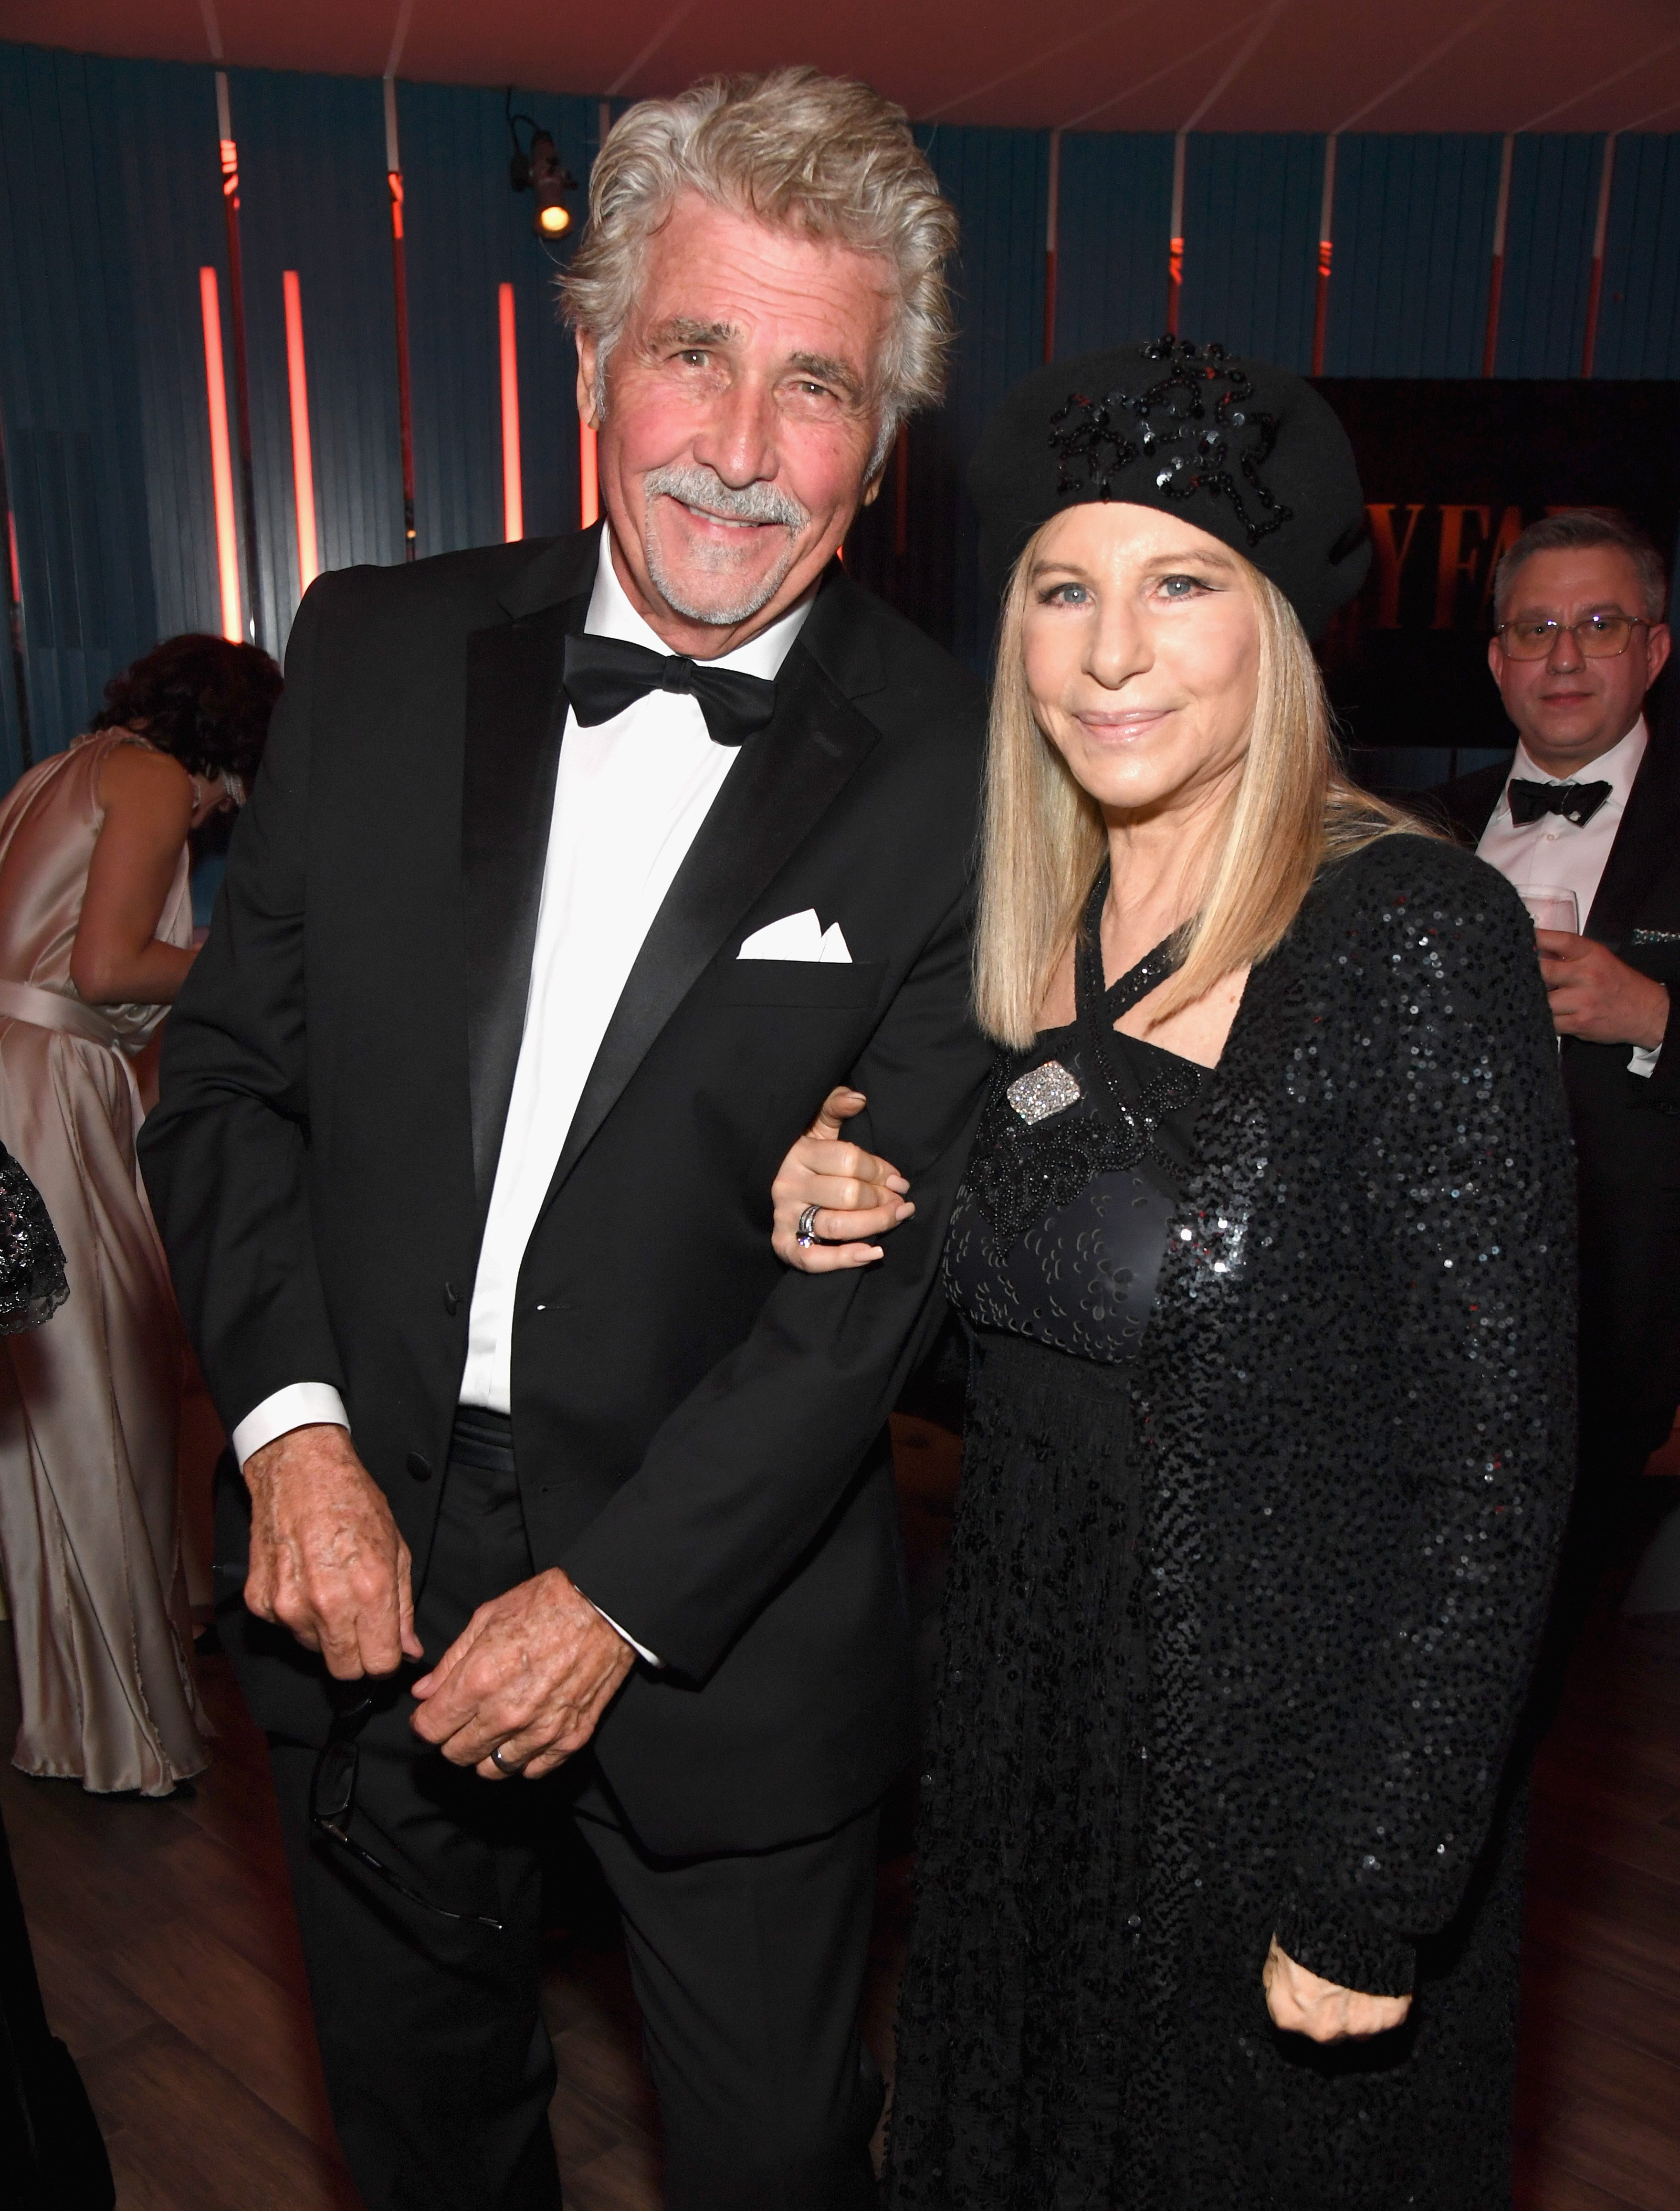 James Brolin and Barbra Streisand attend the 2019 Vanity Fair Oscar Party at Wallis Annenberg Center on February 24, 2019 in Beverly Hills, California | Photo: Getty Images